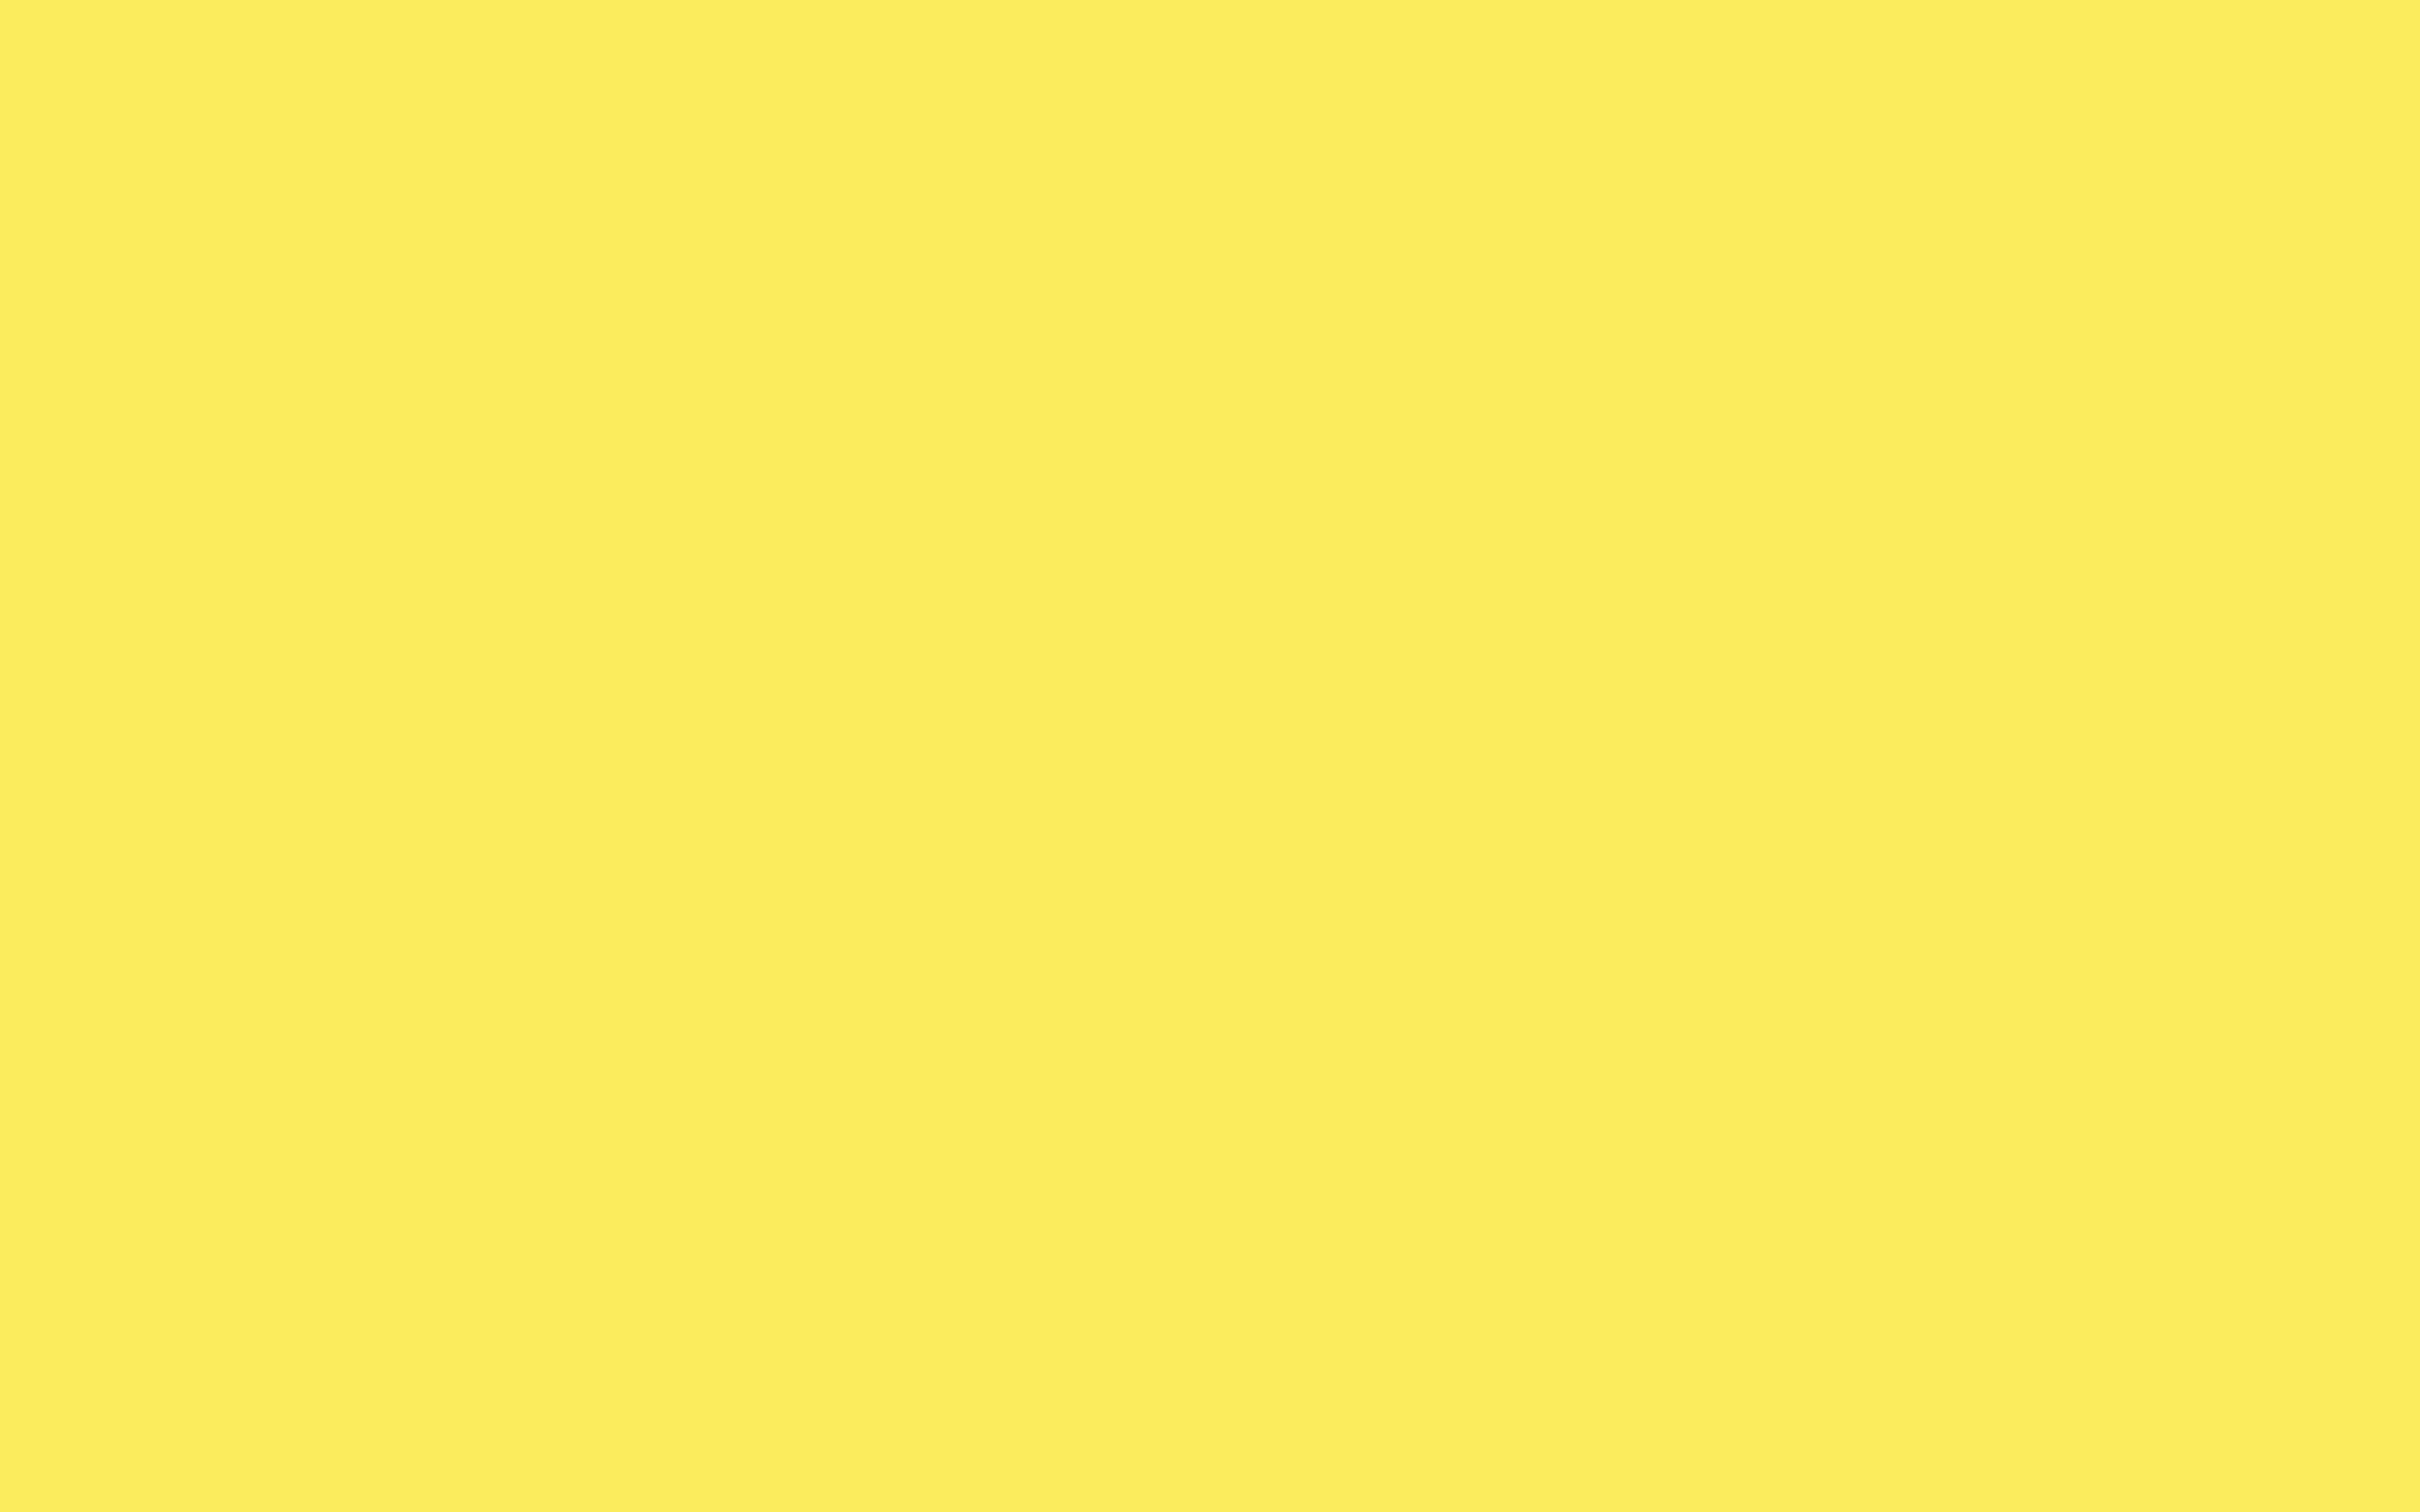 2560x1600 Corn Solid Color Background